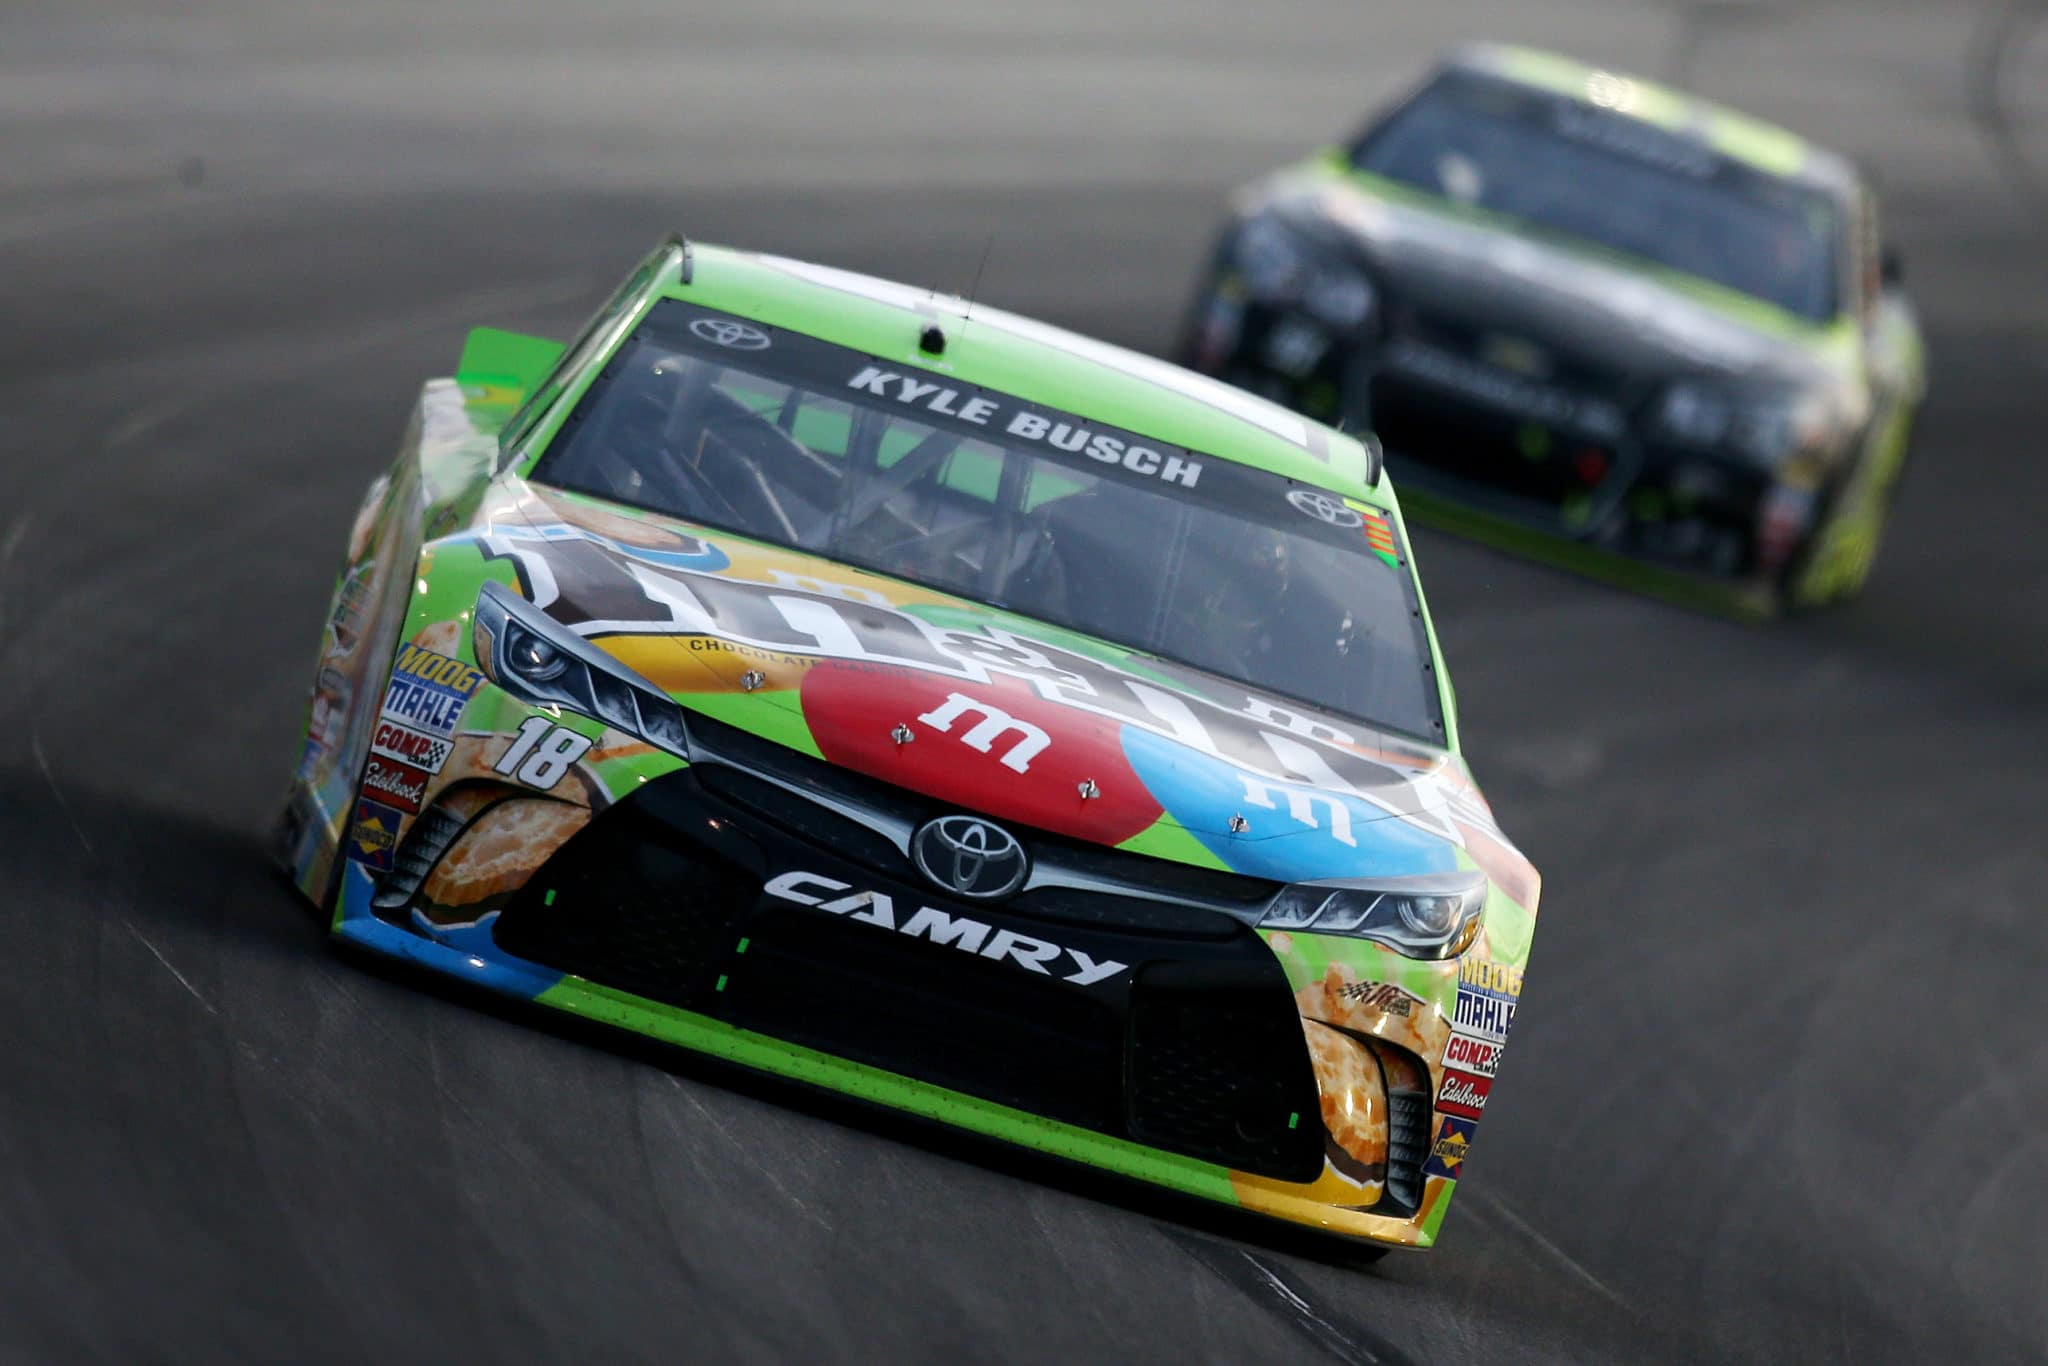 2015 Kentucky CUP Kyle Busch leads credit NASCAR via Getty Images